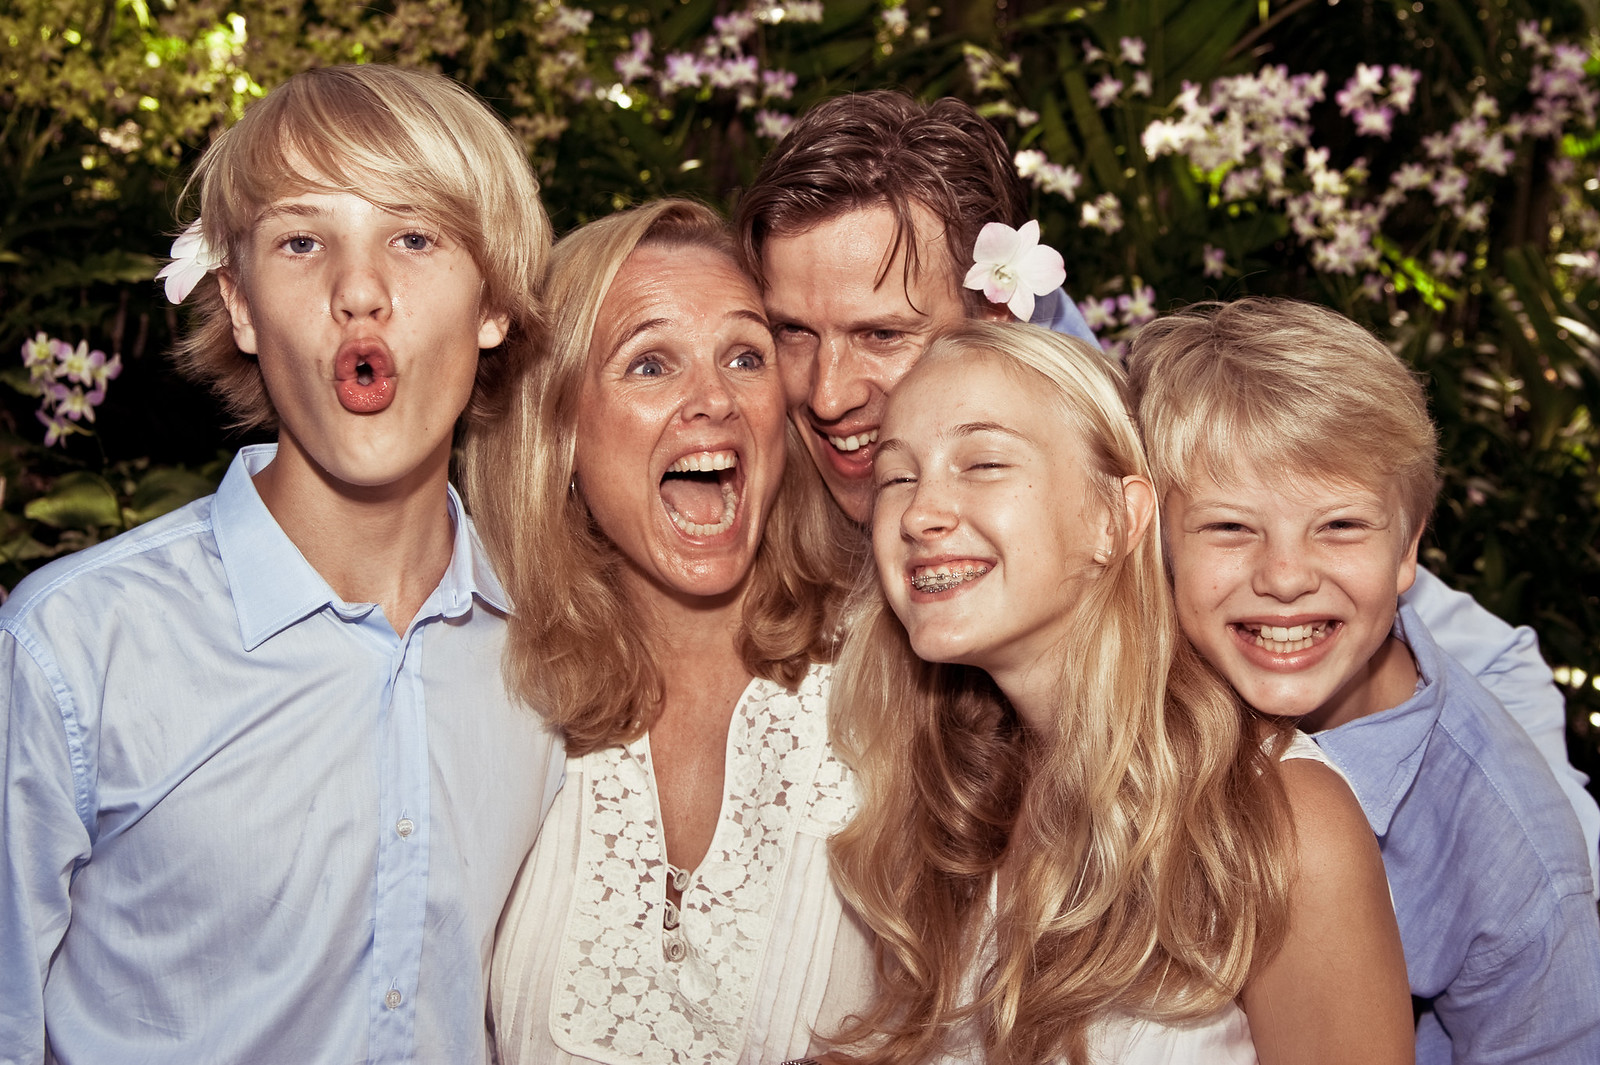 Mette Hartman's Family Photography